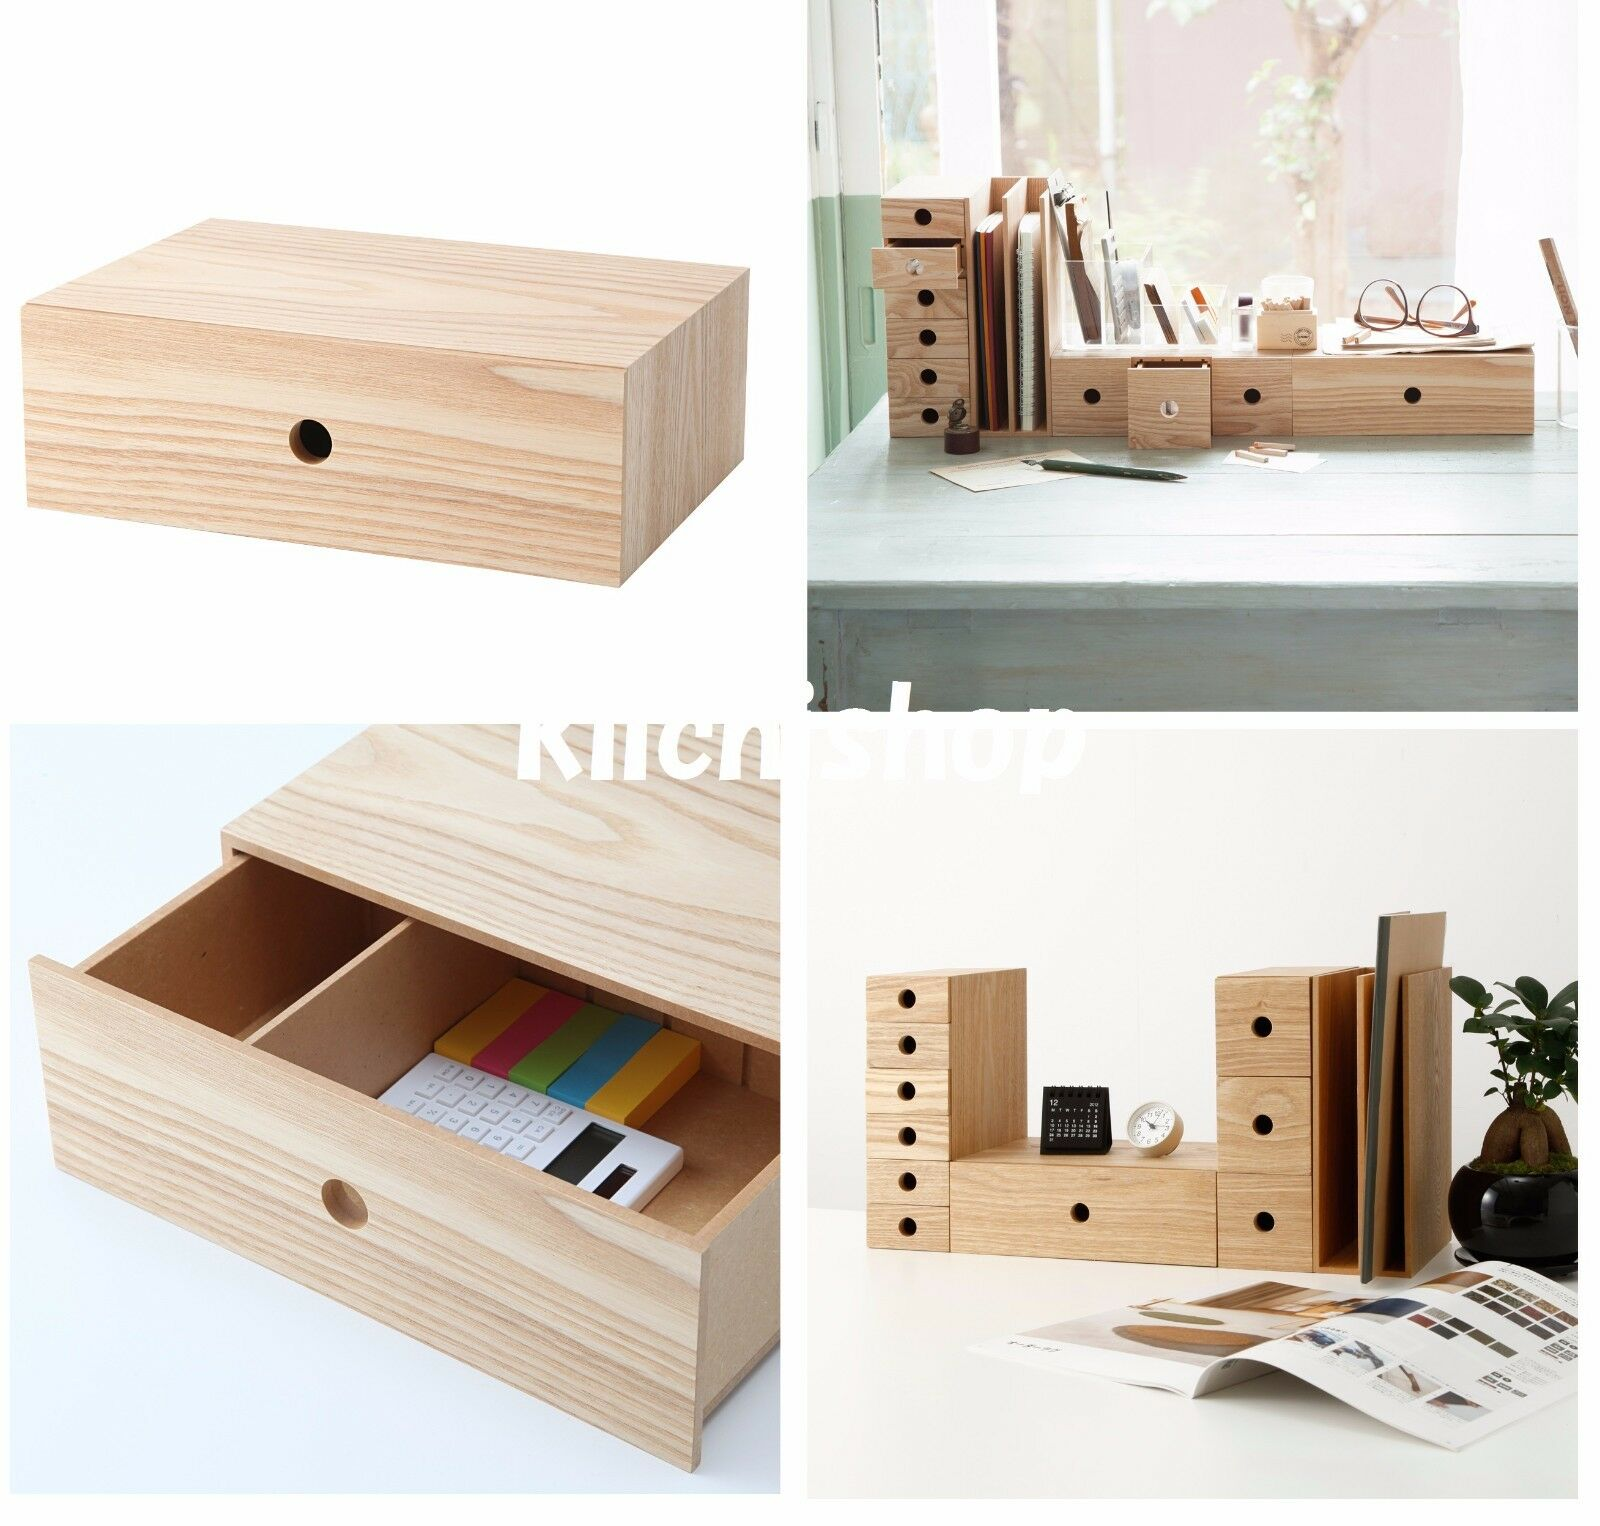 Muji MDF ash wood 1 drawer organize storage box for Accessory small article